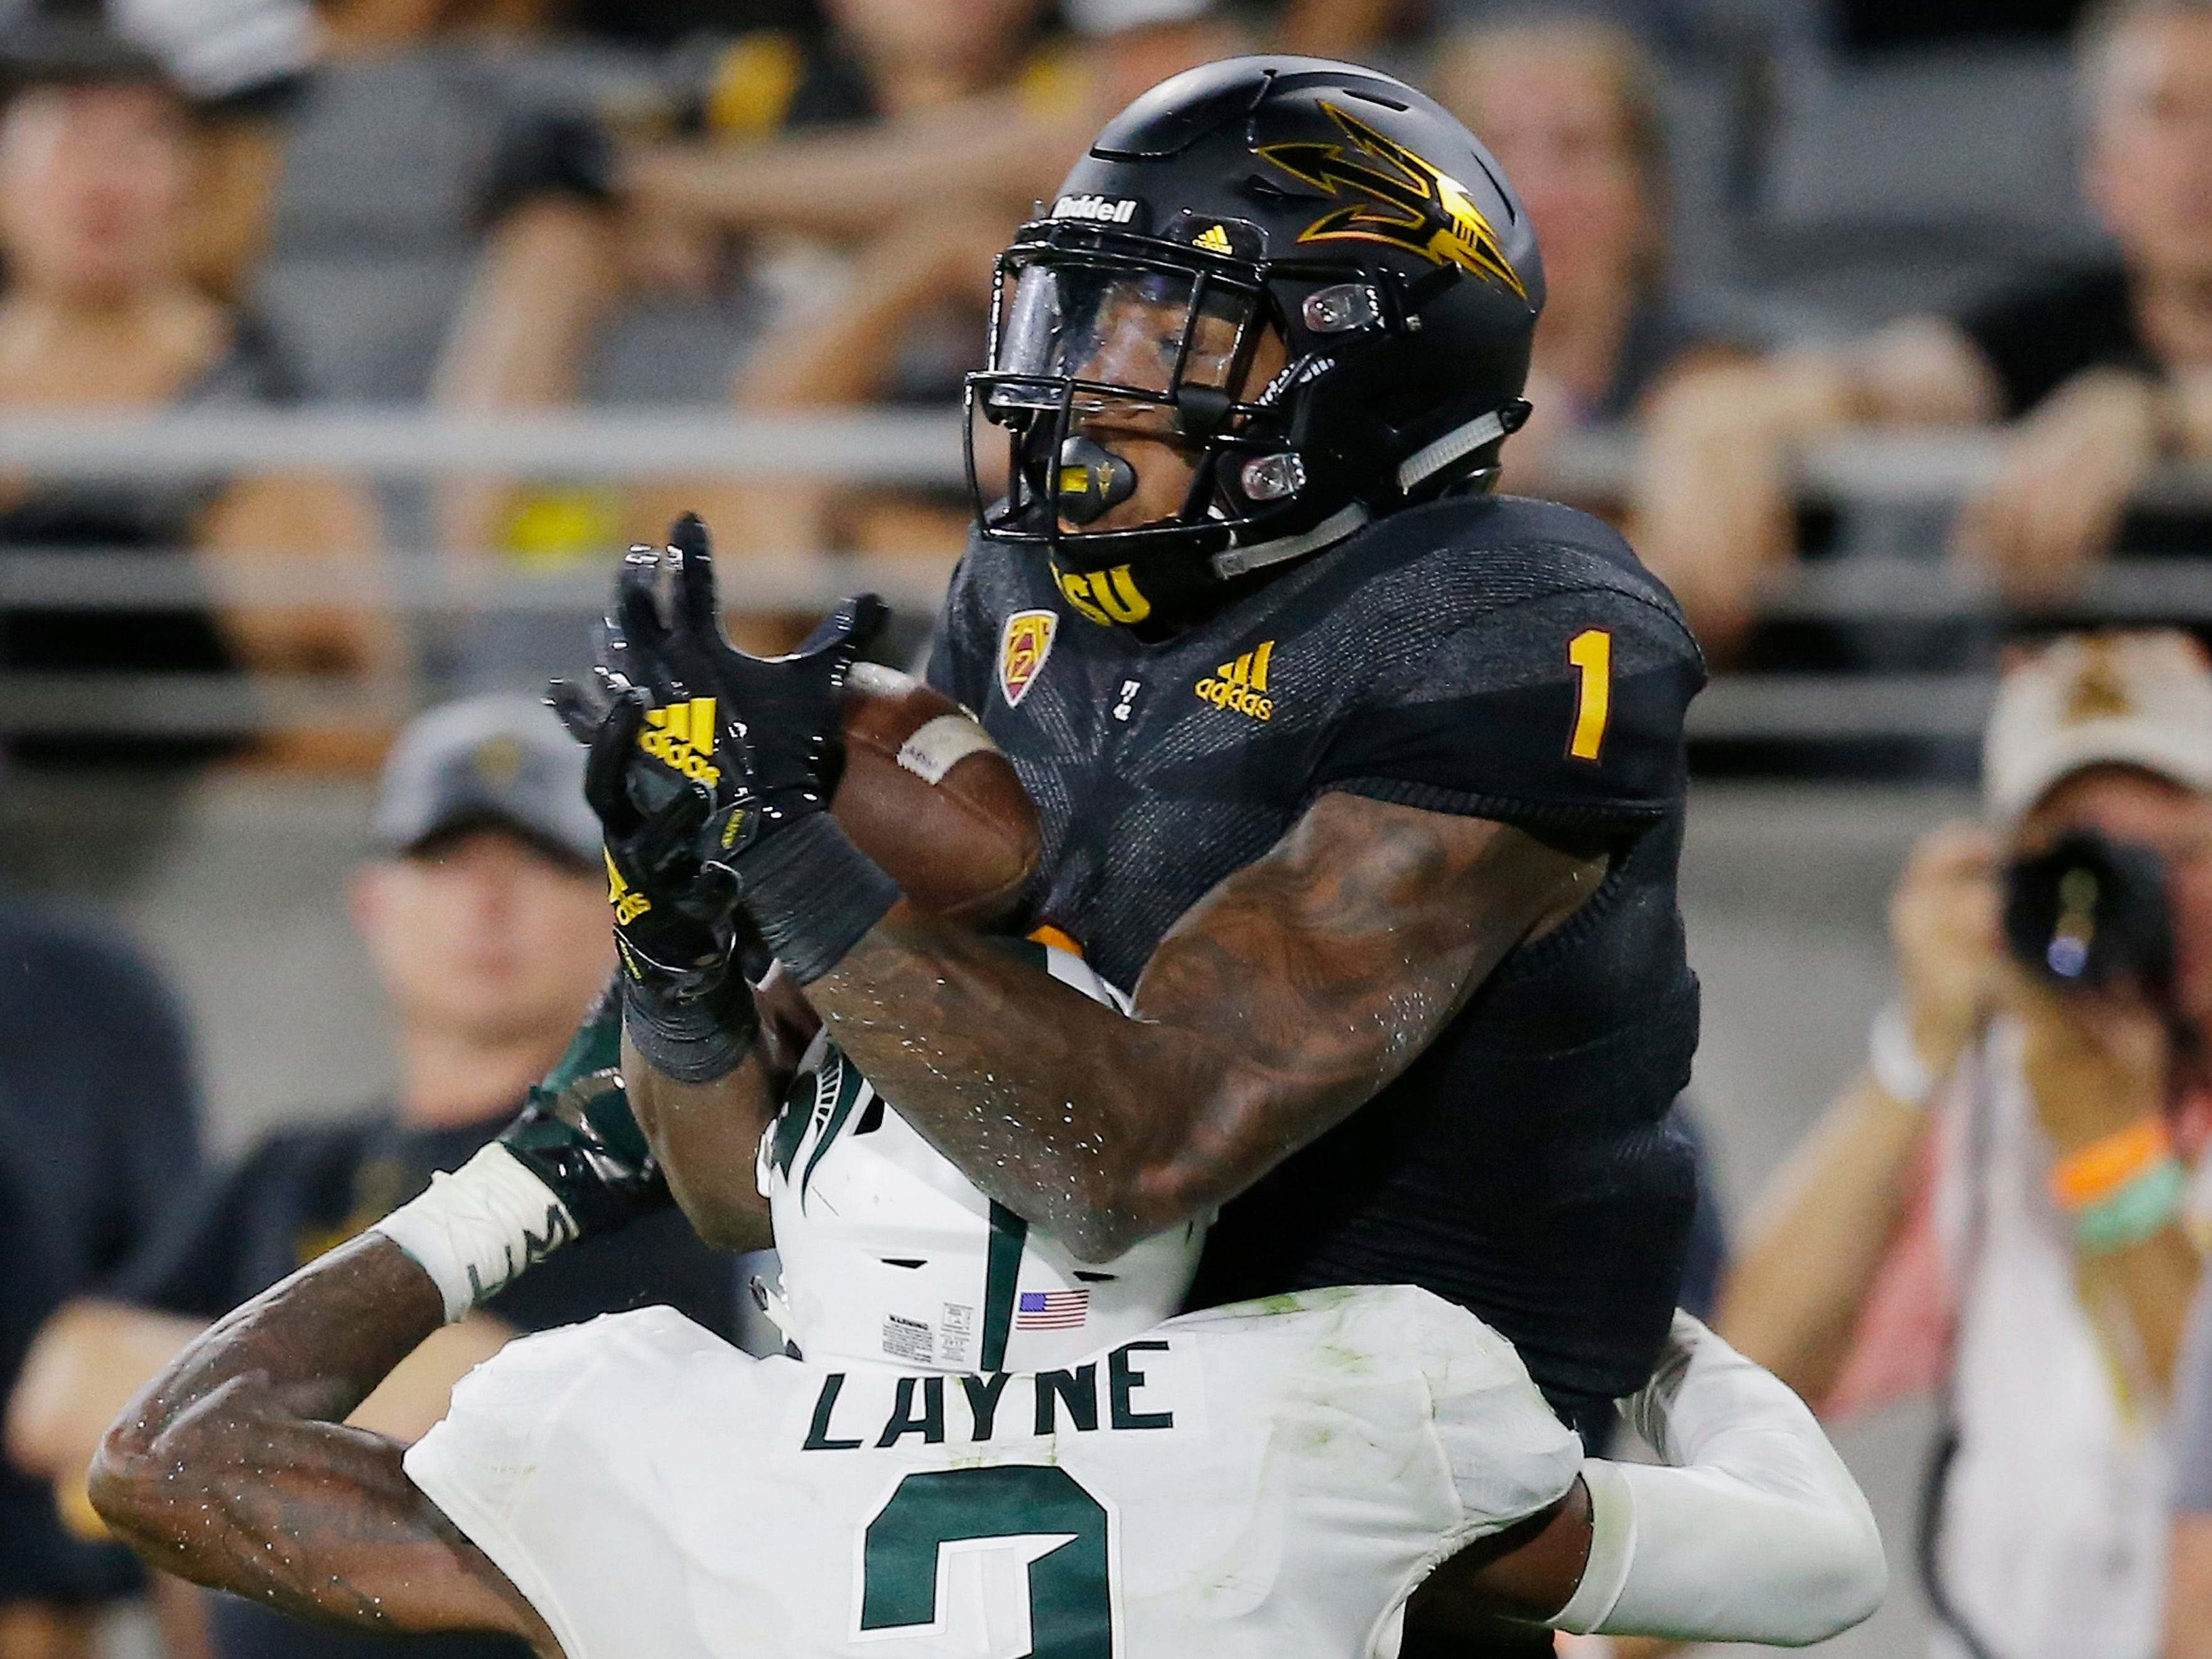 Arizona State wide receiver N'Keal Harry (1) makes a catch over Michigan State cornerback Justin Layne (2) before diving into the end zone for a touchdown during the second half of an NCAA college football game Saturday, Sept. 8, 2018, in Tempe, Ariz. Arizona State defeated Michigan State 16-13.